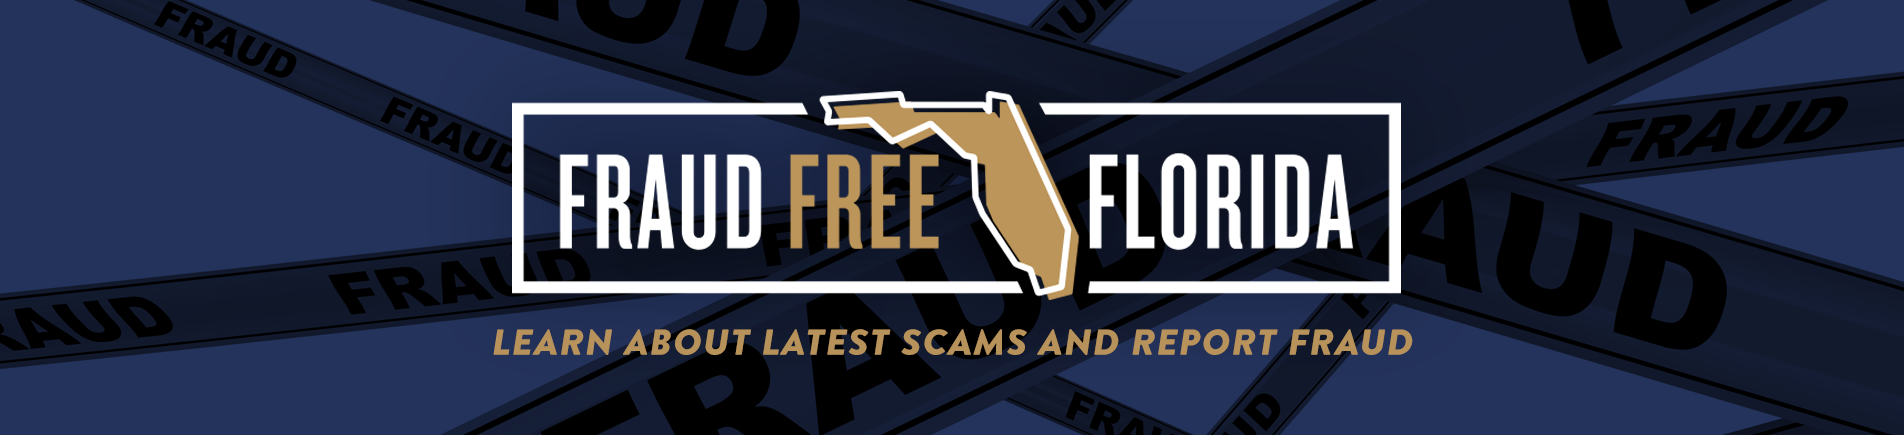 Fraud Free Florida Resources